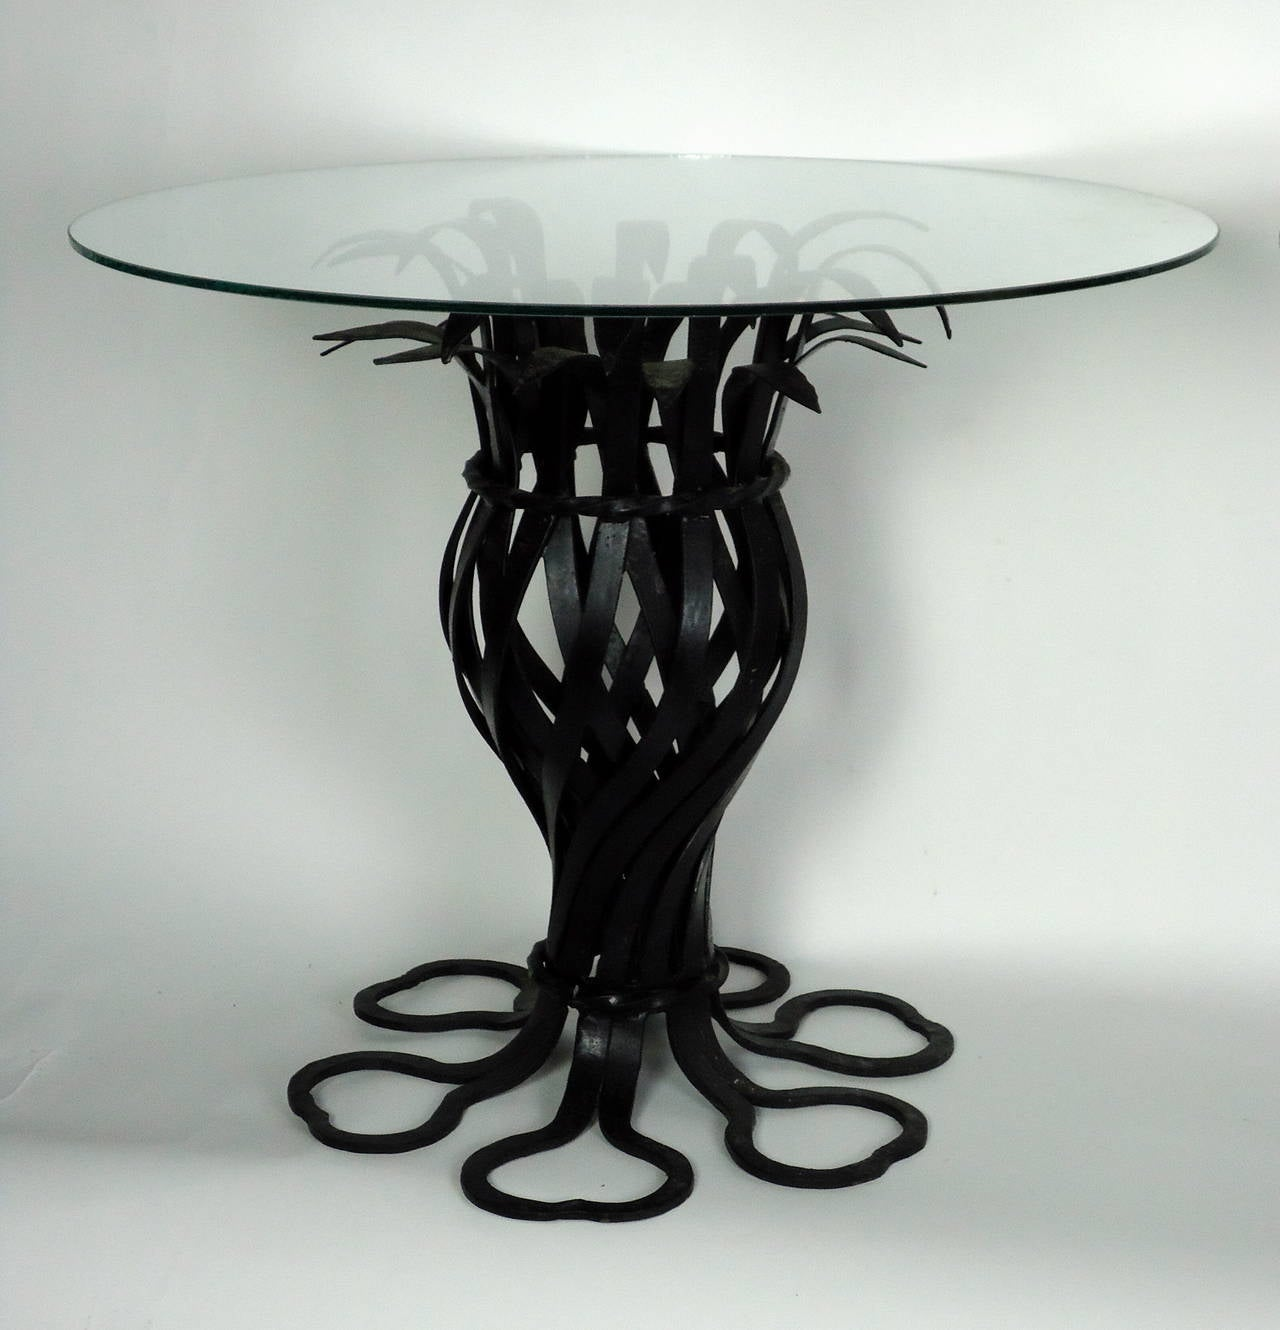 American Salterini Style Pair of Woven Wrought Iron Pineapple End Tables, circa 1970 For Sale